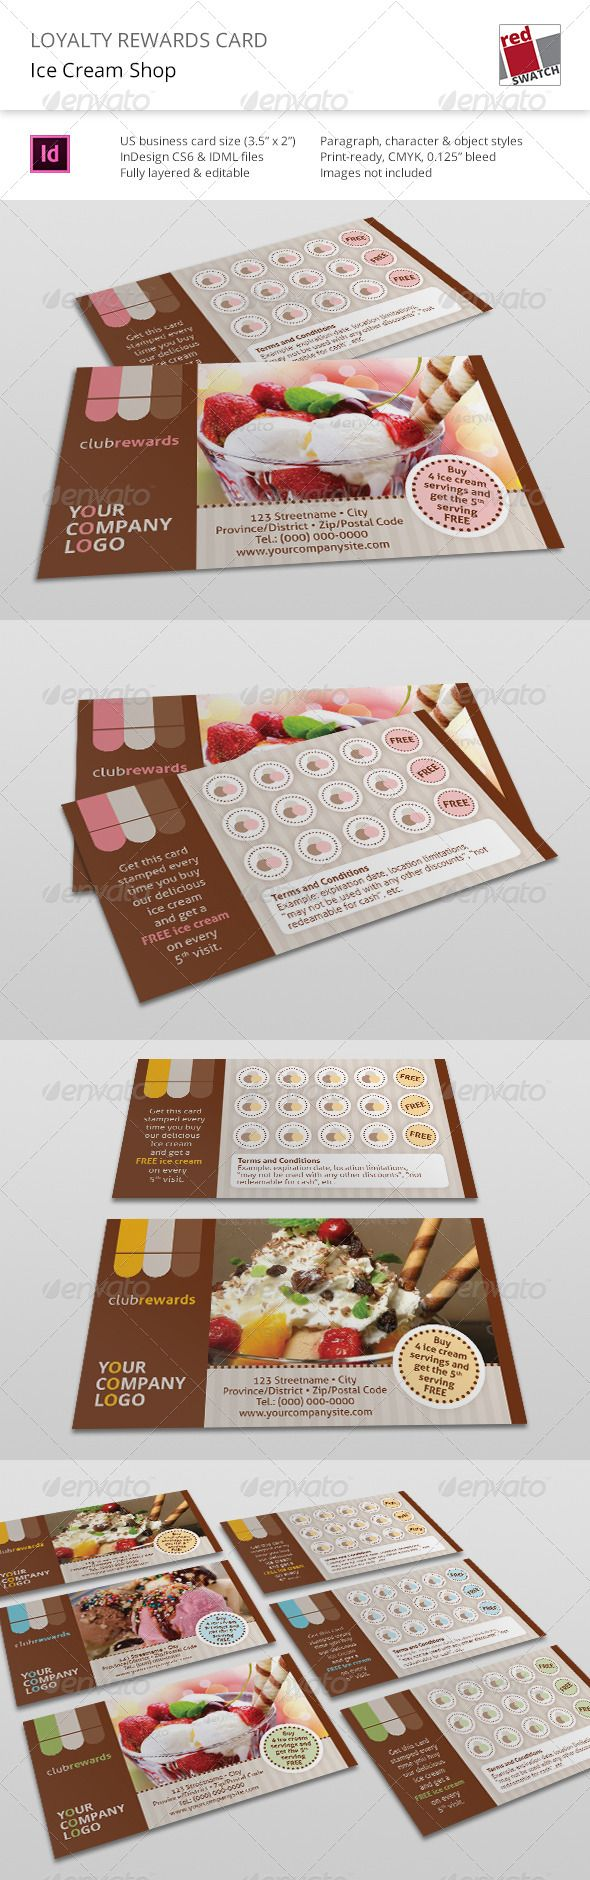 Loyalty Rewards Card - Ice Cream Shop Template #design #printdesign Download: http://graphicriver.net/item/loyalty-rewards-card-ice-cream-shop/6498561?ref=ksioks